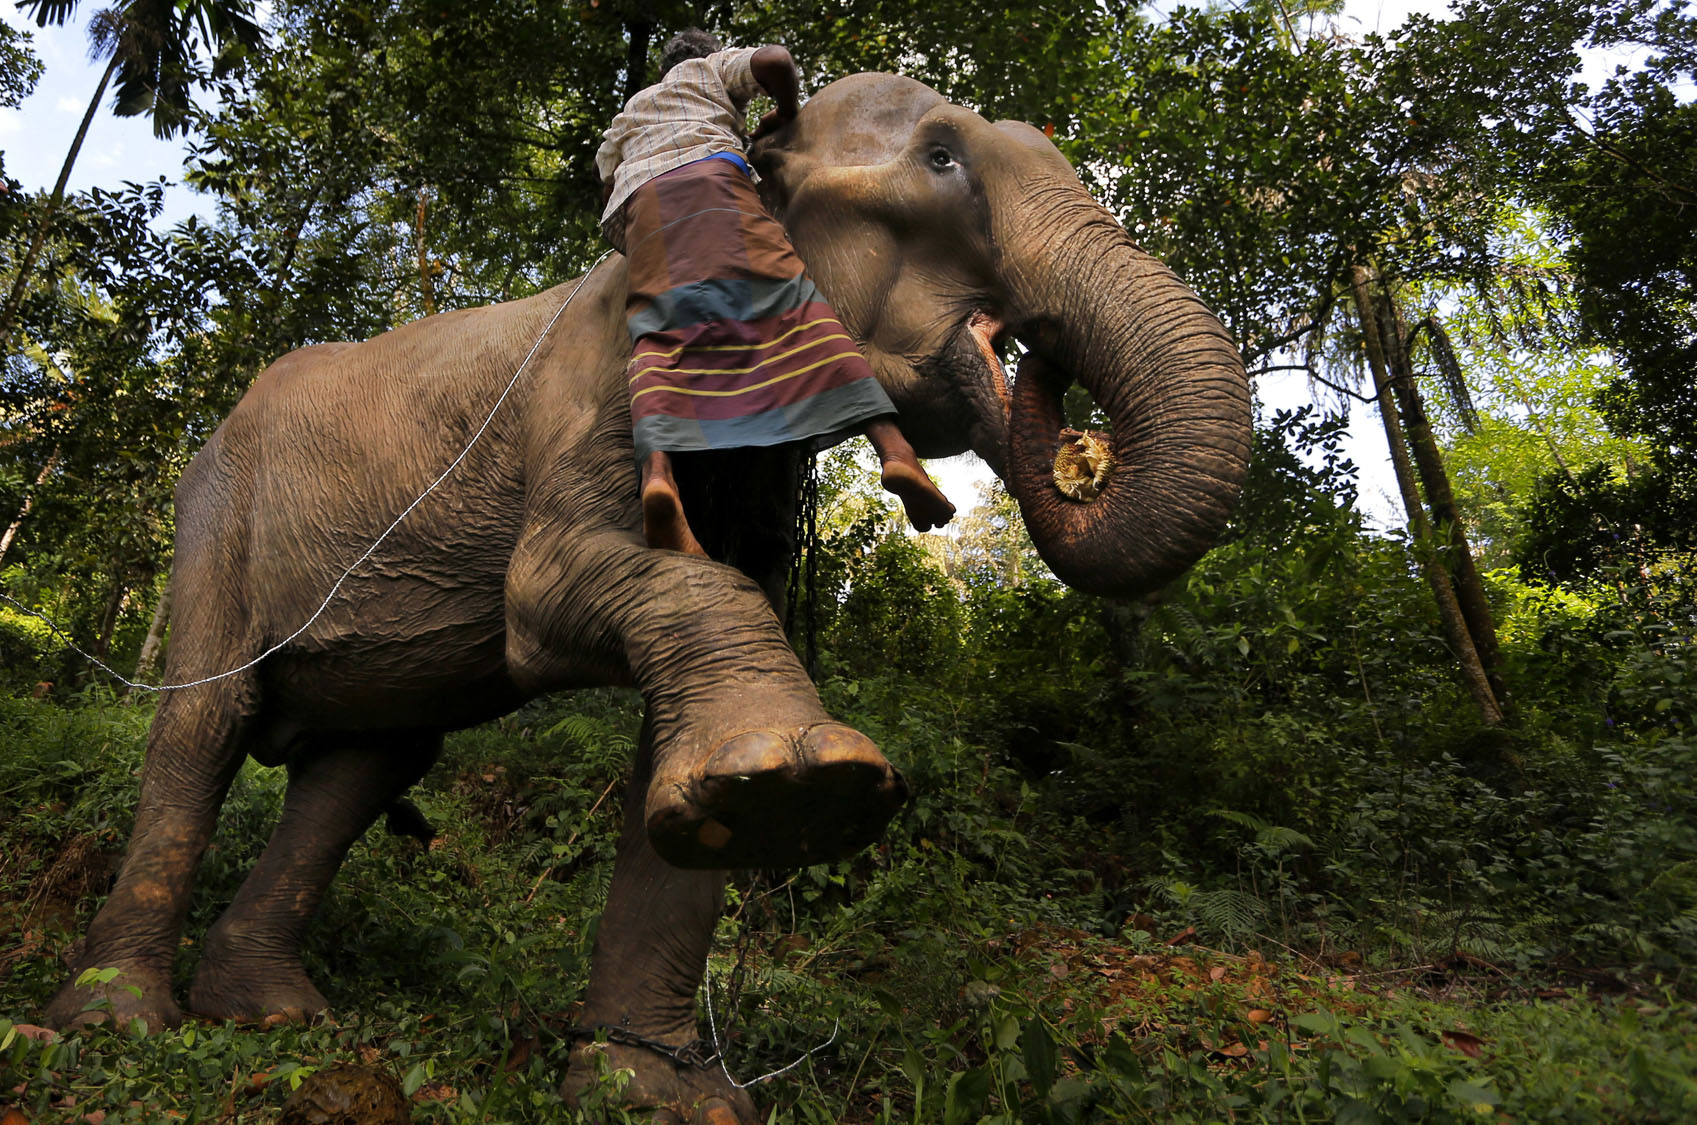 Sri Lanka cracks down on illegal elephant ownership